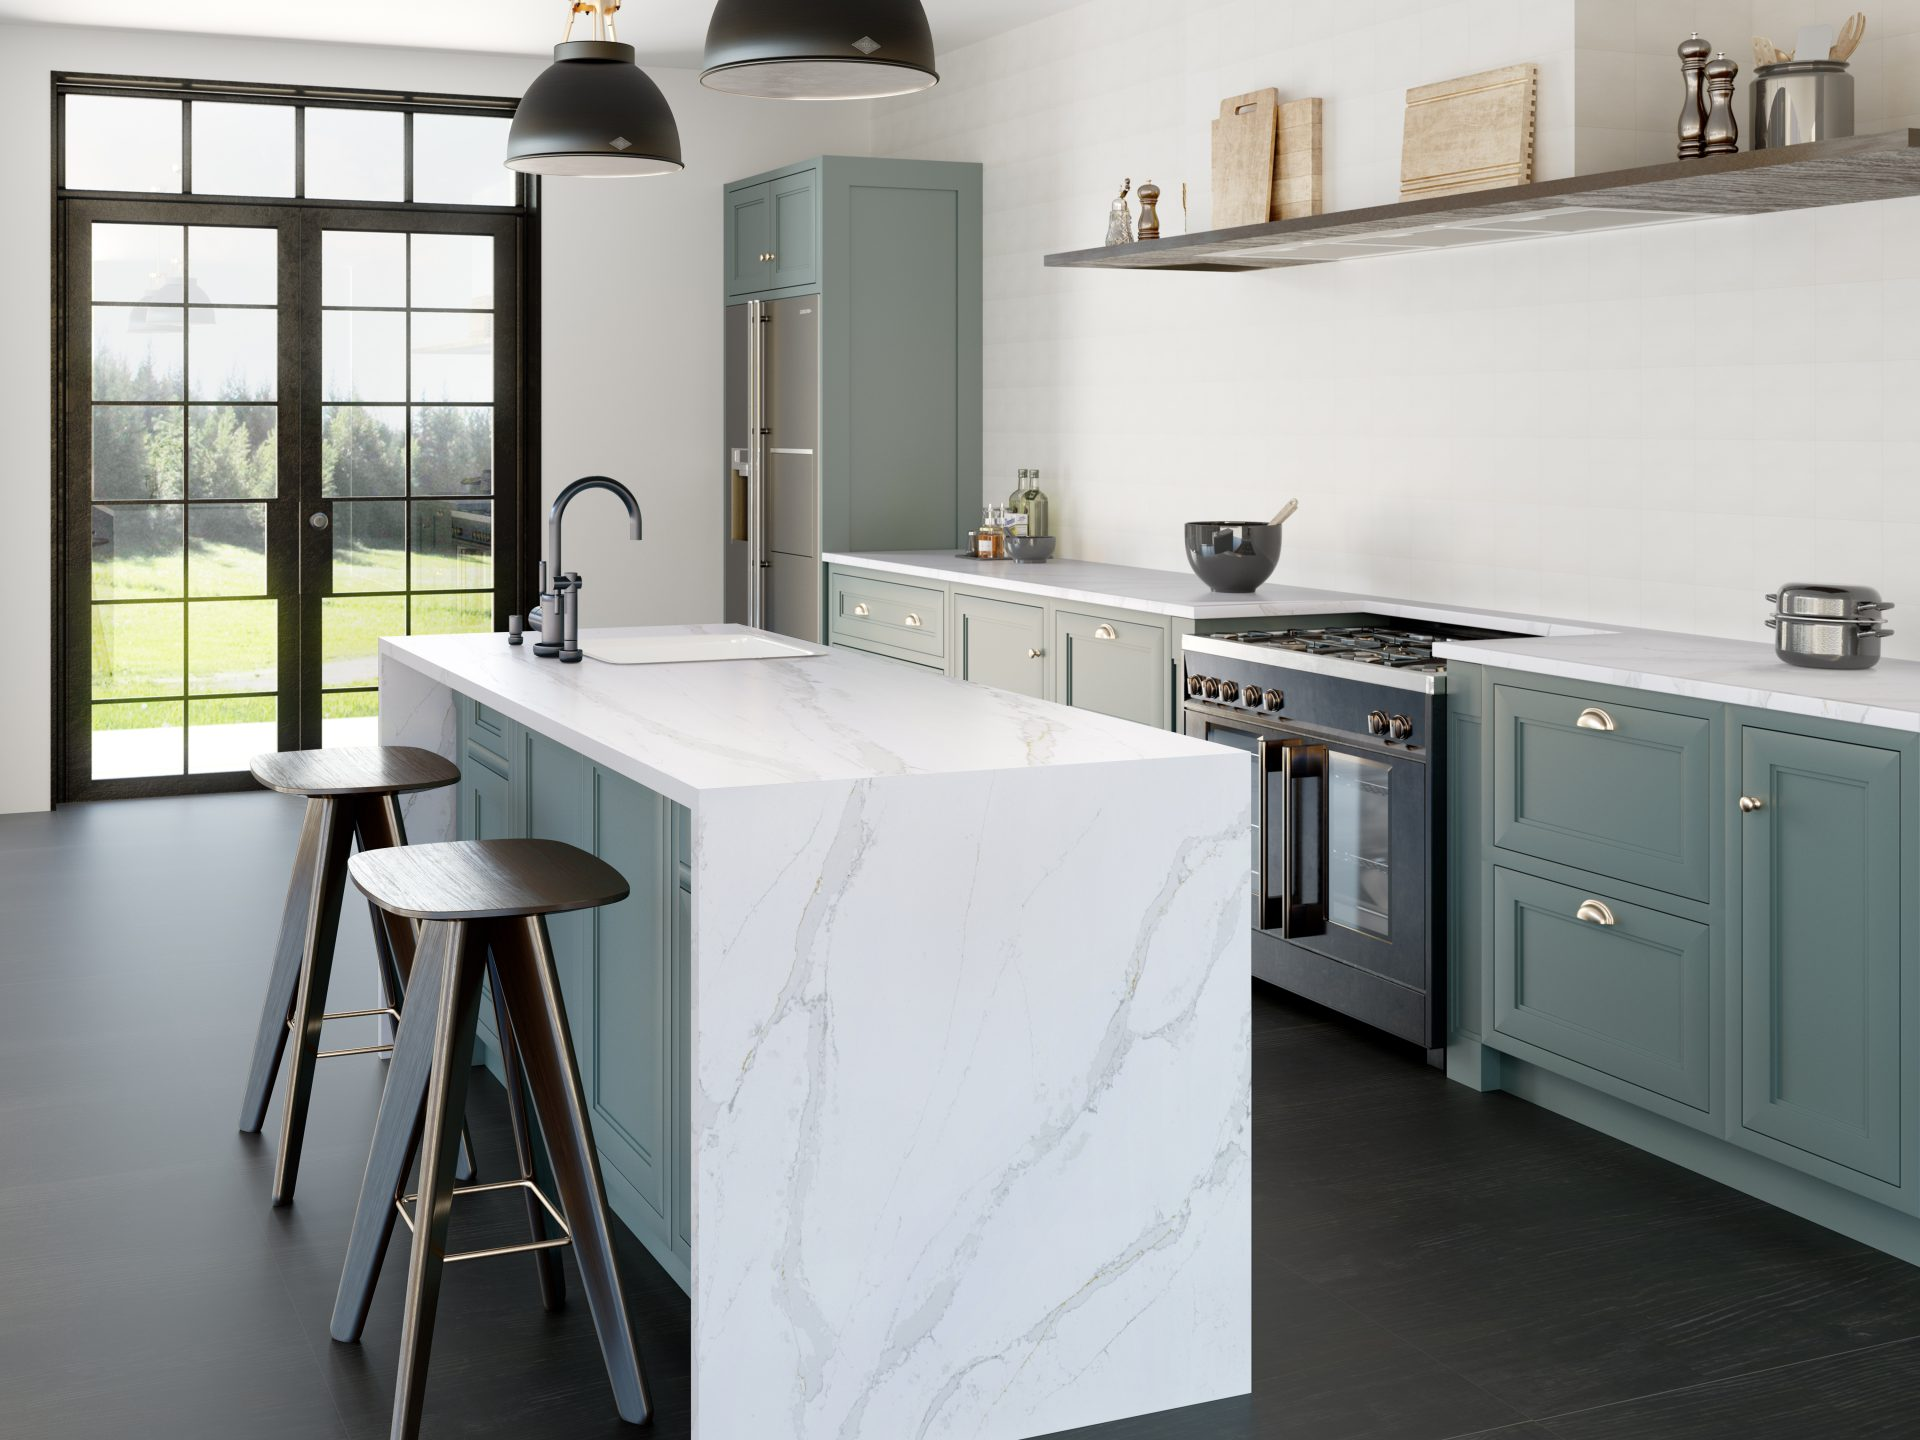 Silestone Kitchen - Eternal Calacatta Gold